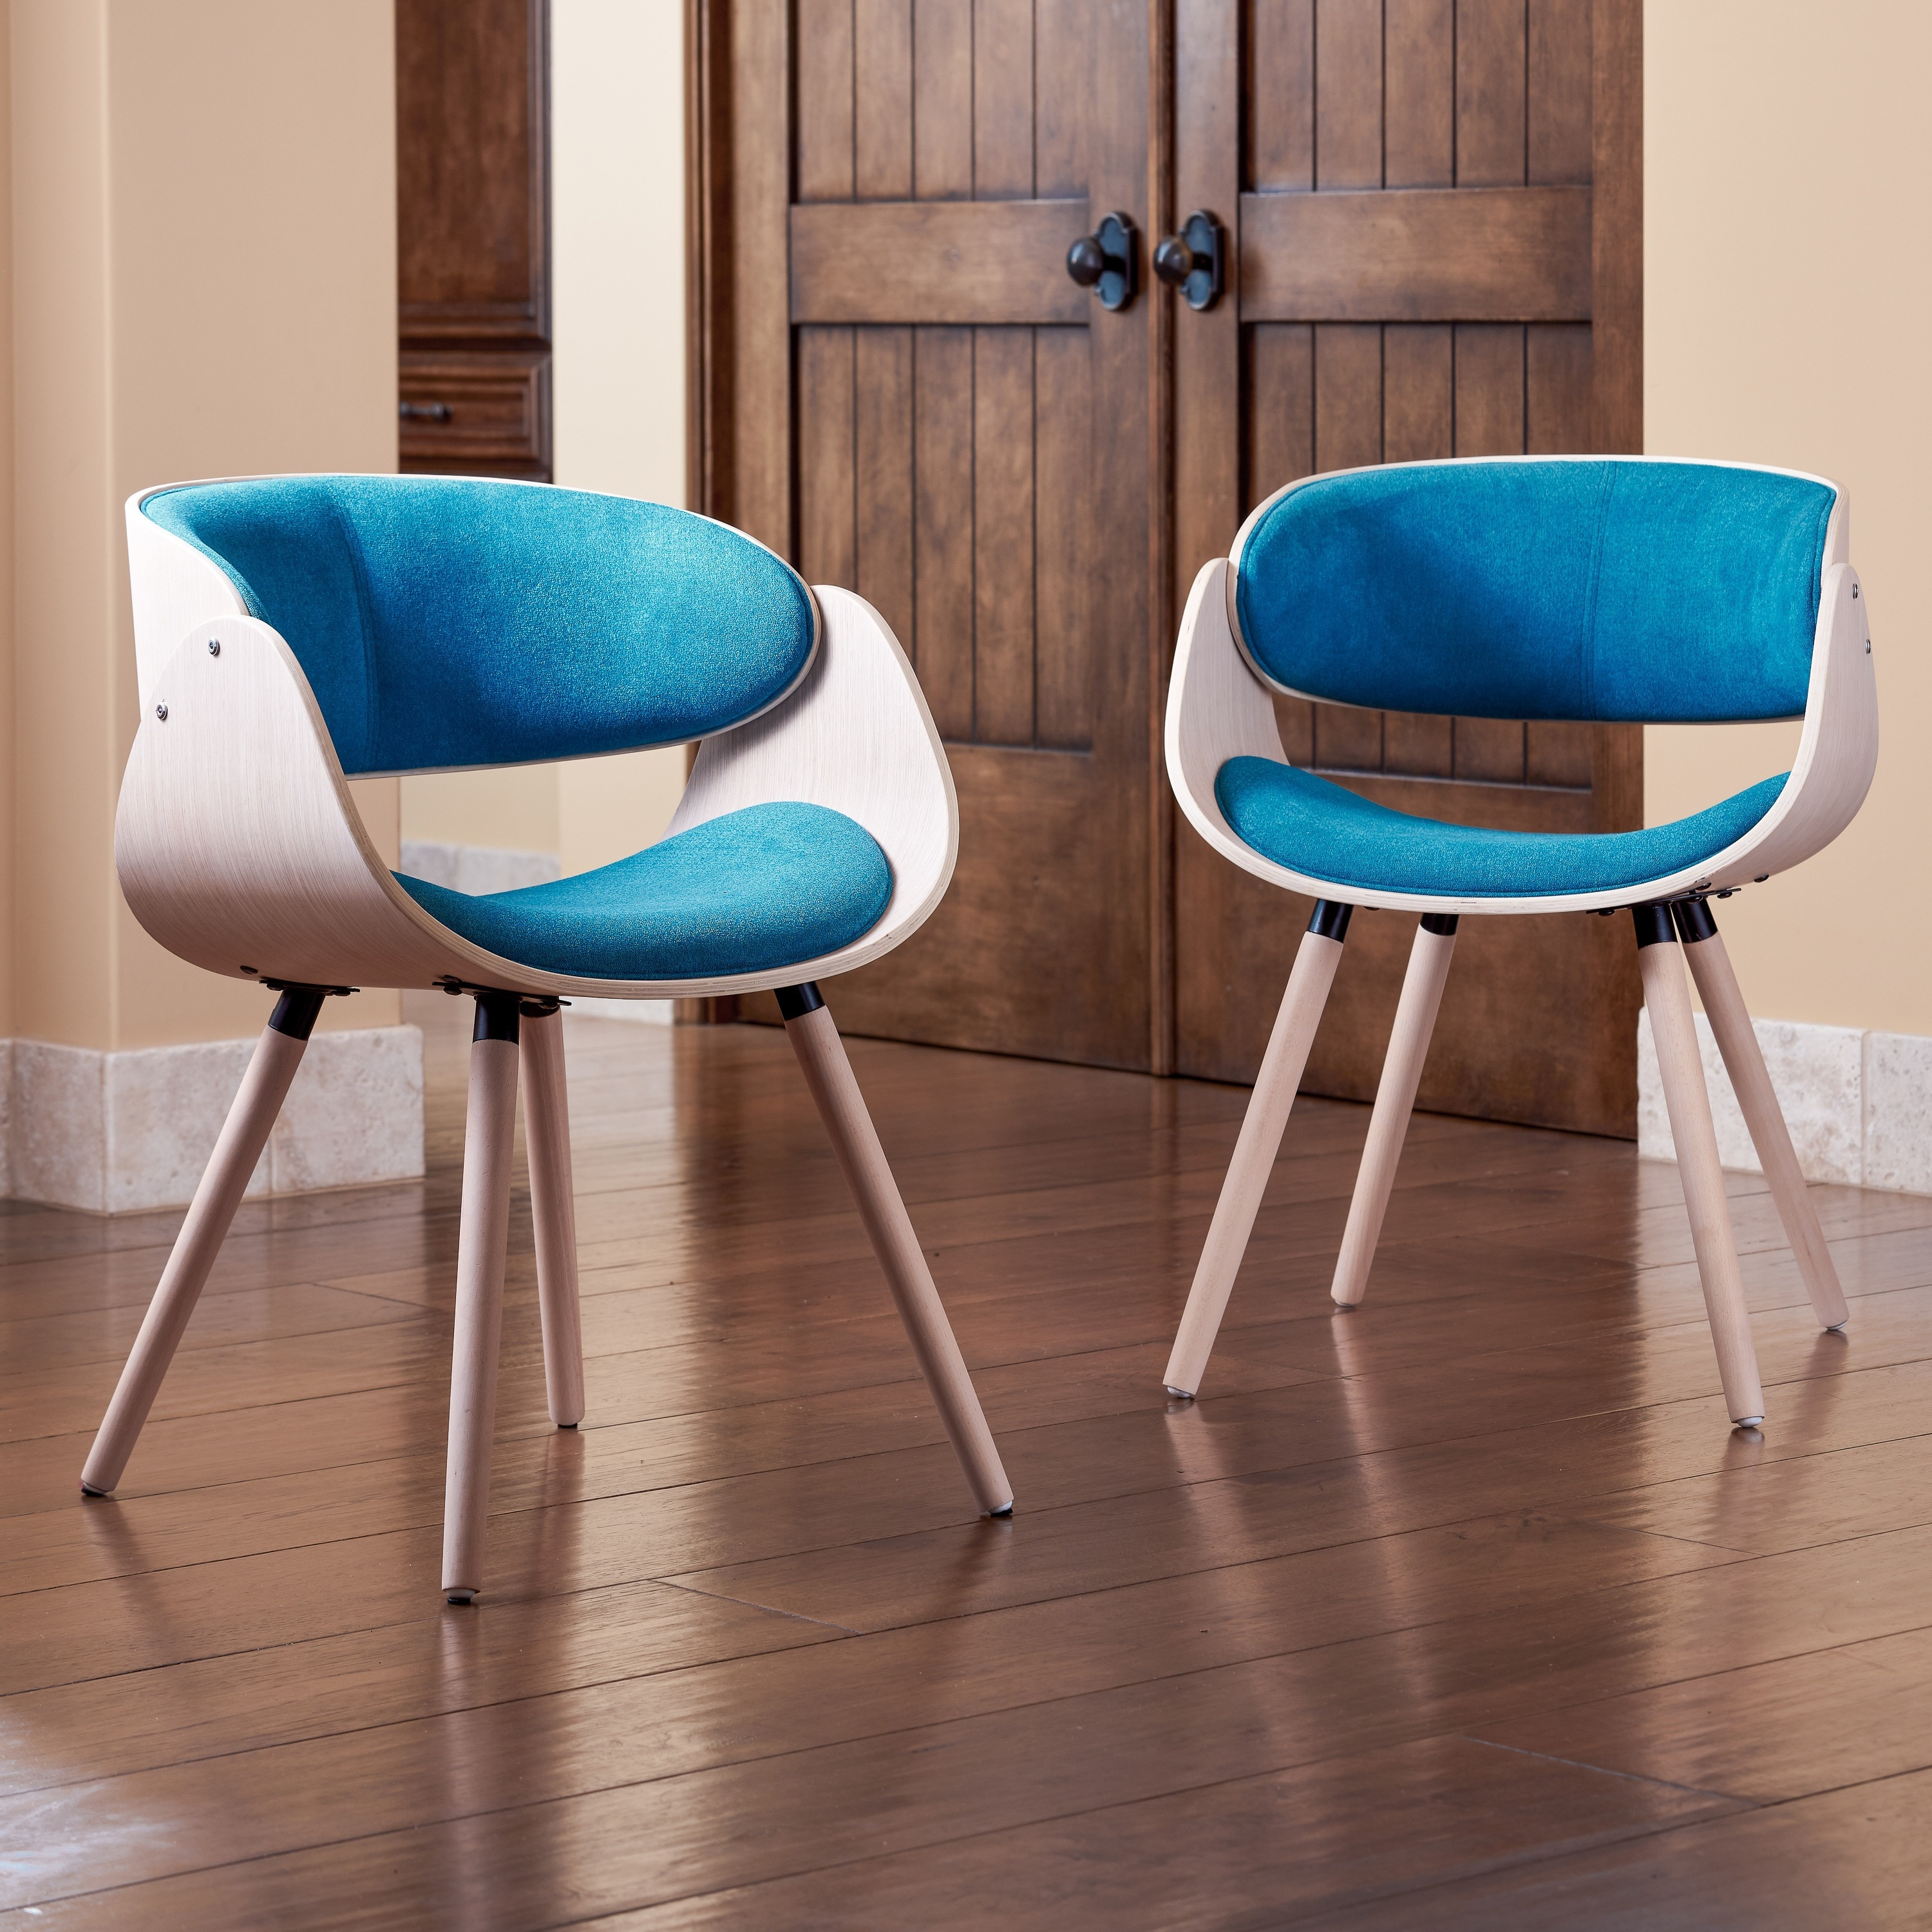 Buy Blue Kitchen u0026 Dining Room Chairs